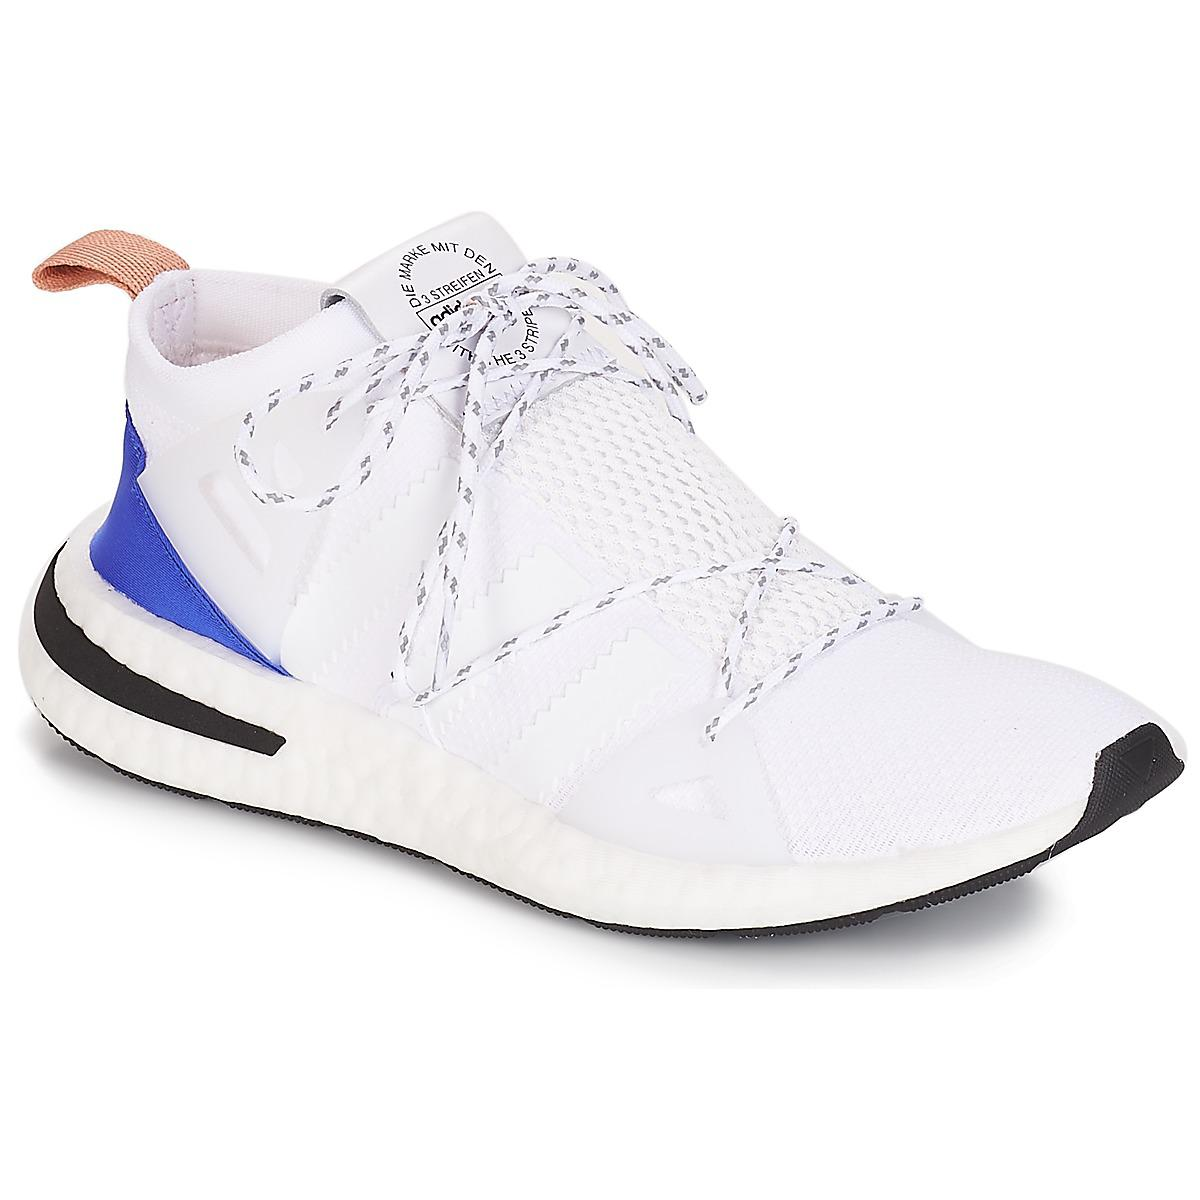 8b9c2333f4 adidas Arkyn W Shoes (trainers) in White - Save 24% - Lyst